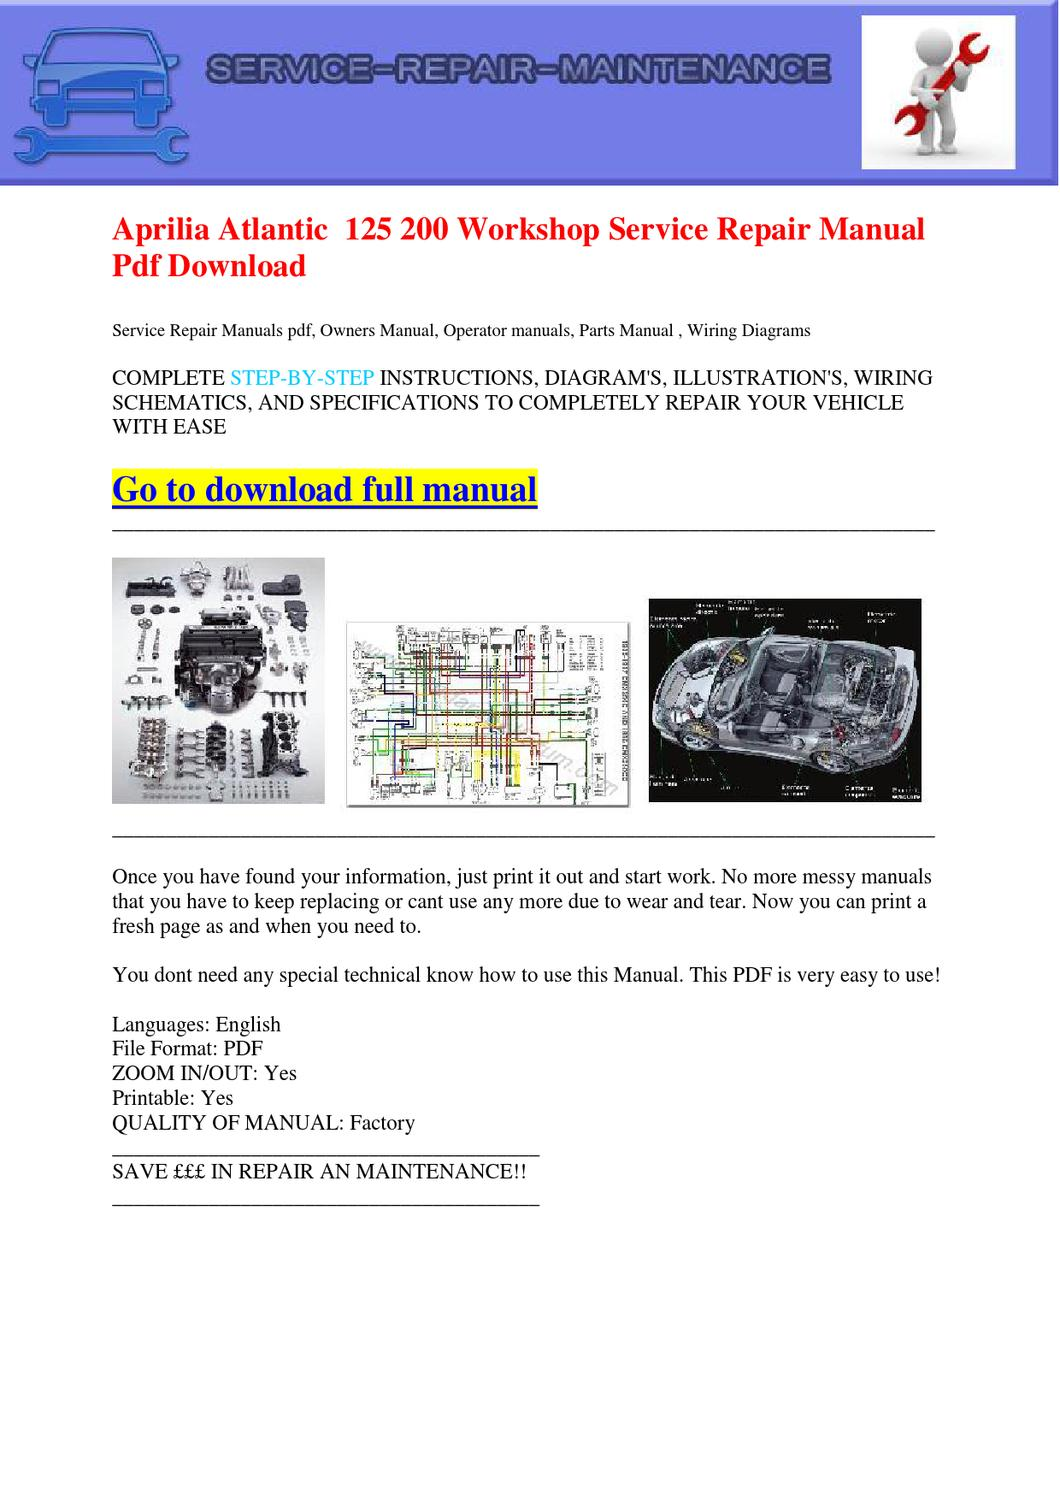 Aprilia Atlantic 125 200 Workshop Service Repair Manual Pdf Download by  Dernis Castan - issuu